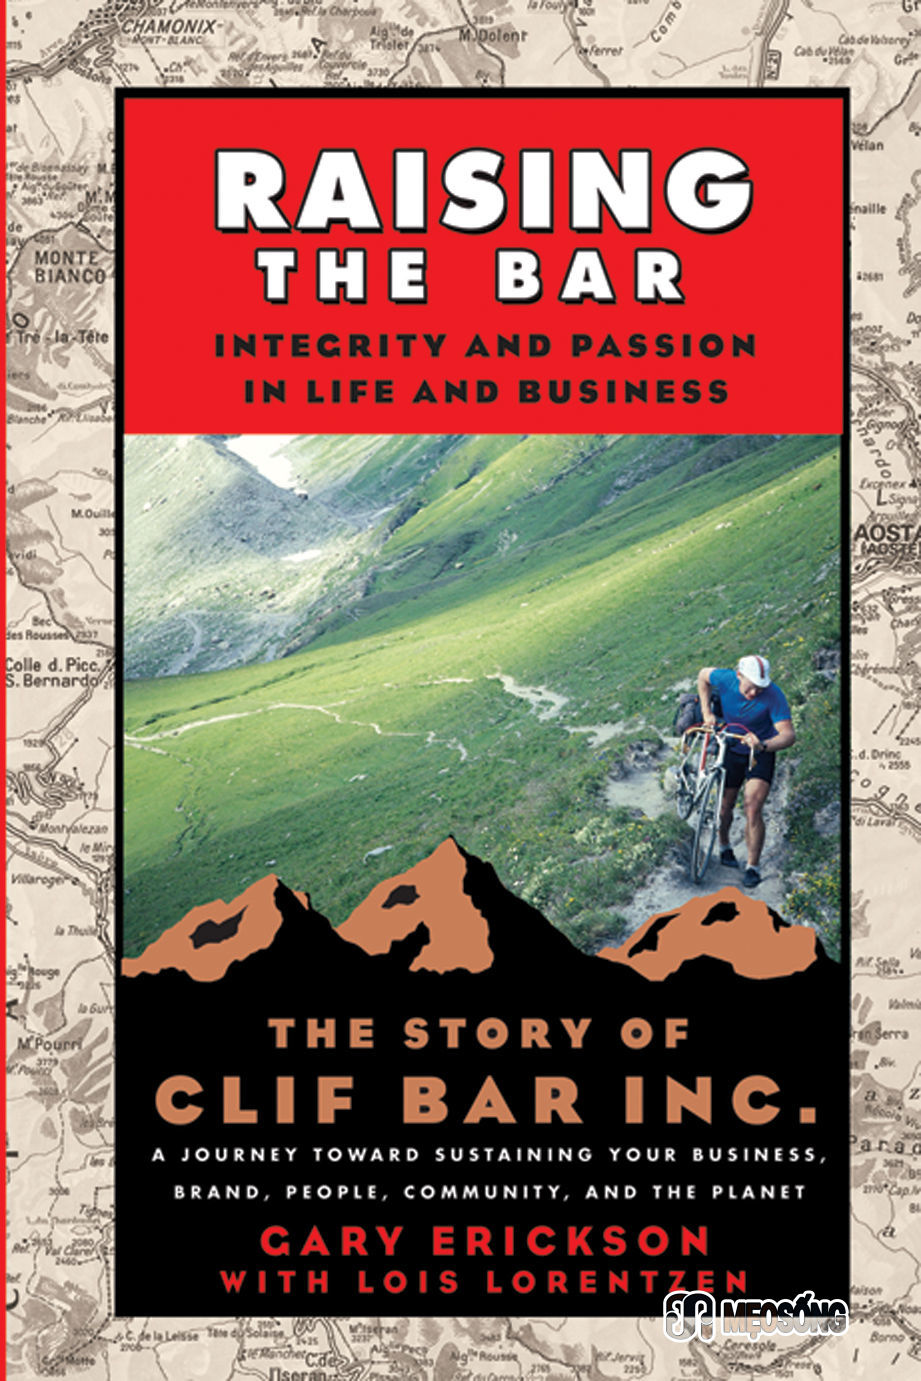 Raising the Bar: Integrity and Passion in Life and Business: the Story of Clif Bar & Co. By: Gary Erickson